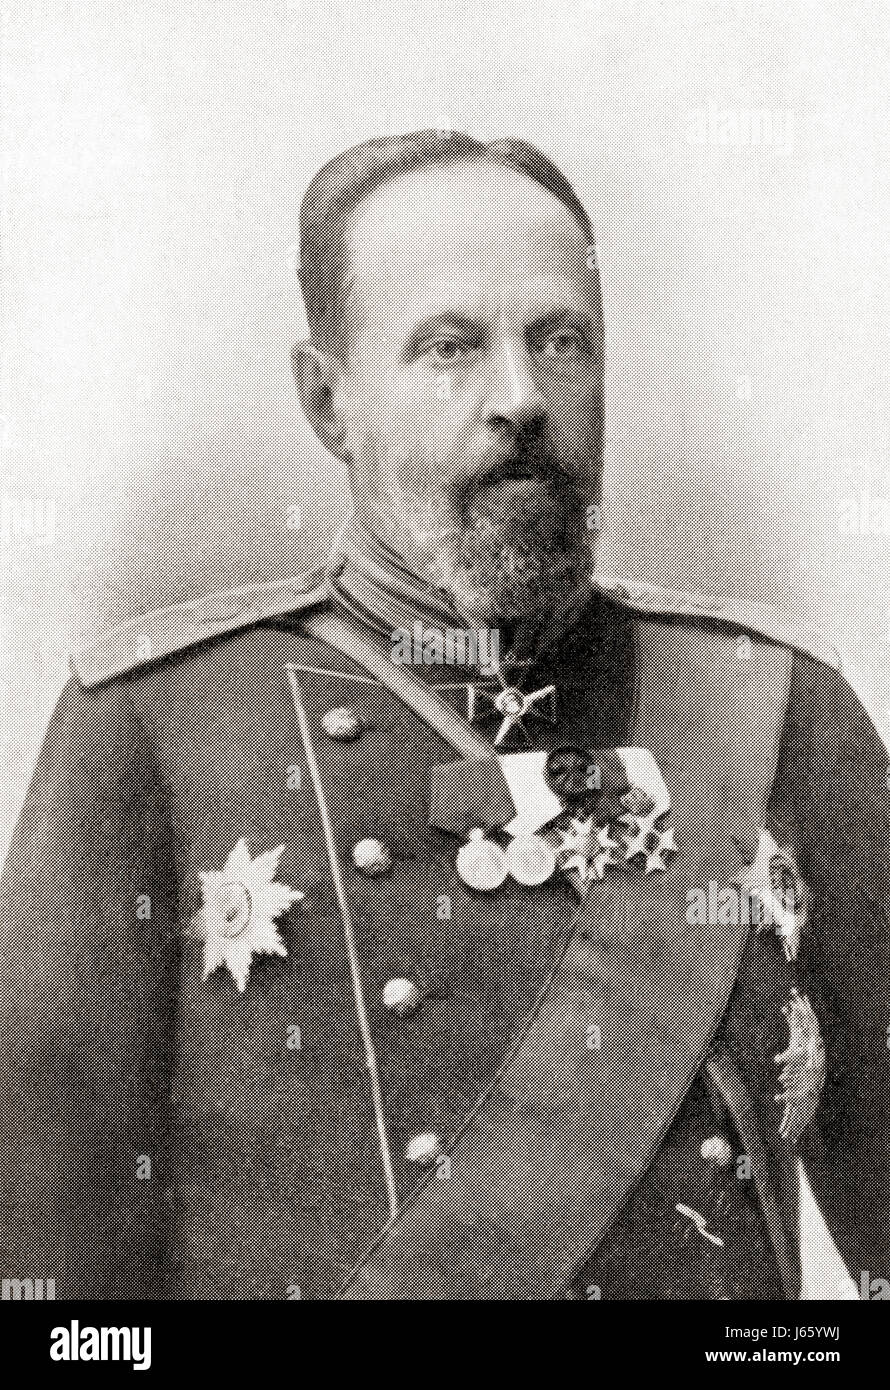 Count Sergei Yulyevich Witte, 1849  – 1915, aka  Sergius Witte.  Highly influential econometrician, minister, and - Stock Image